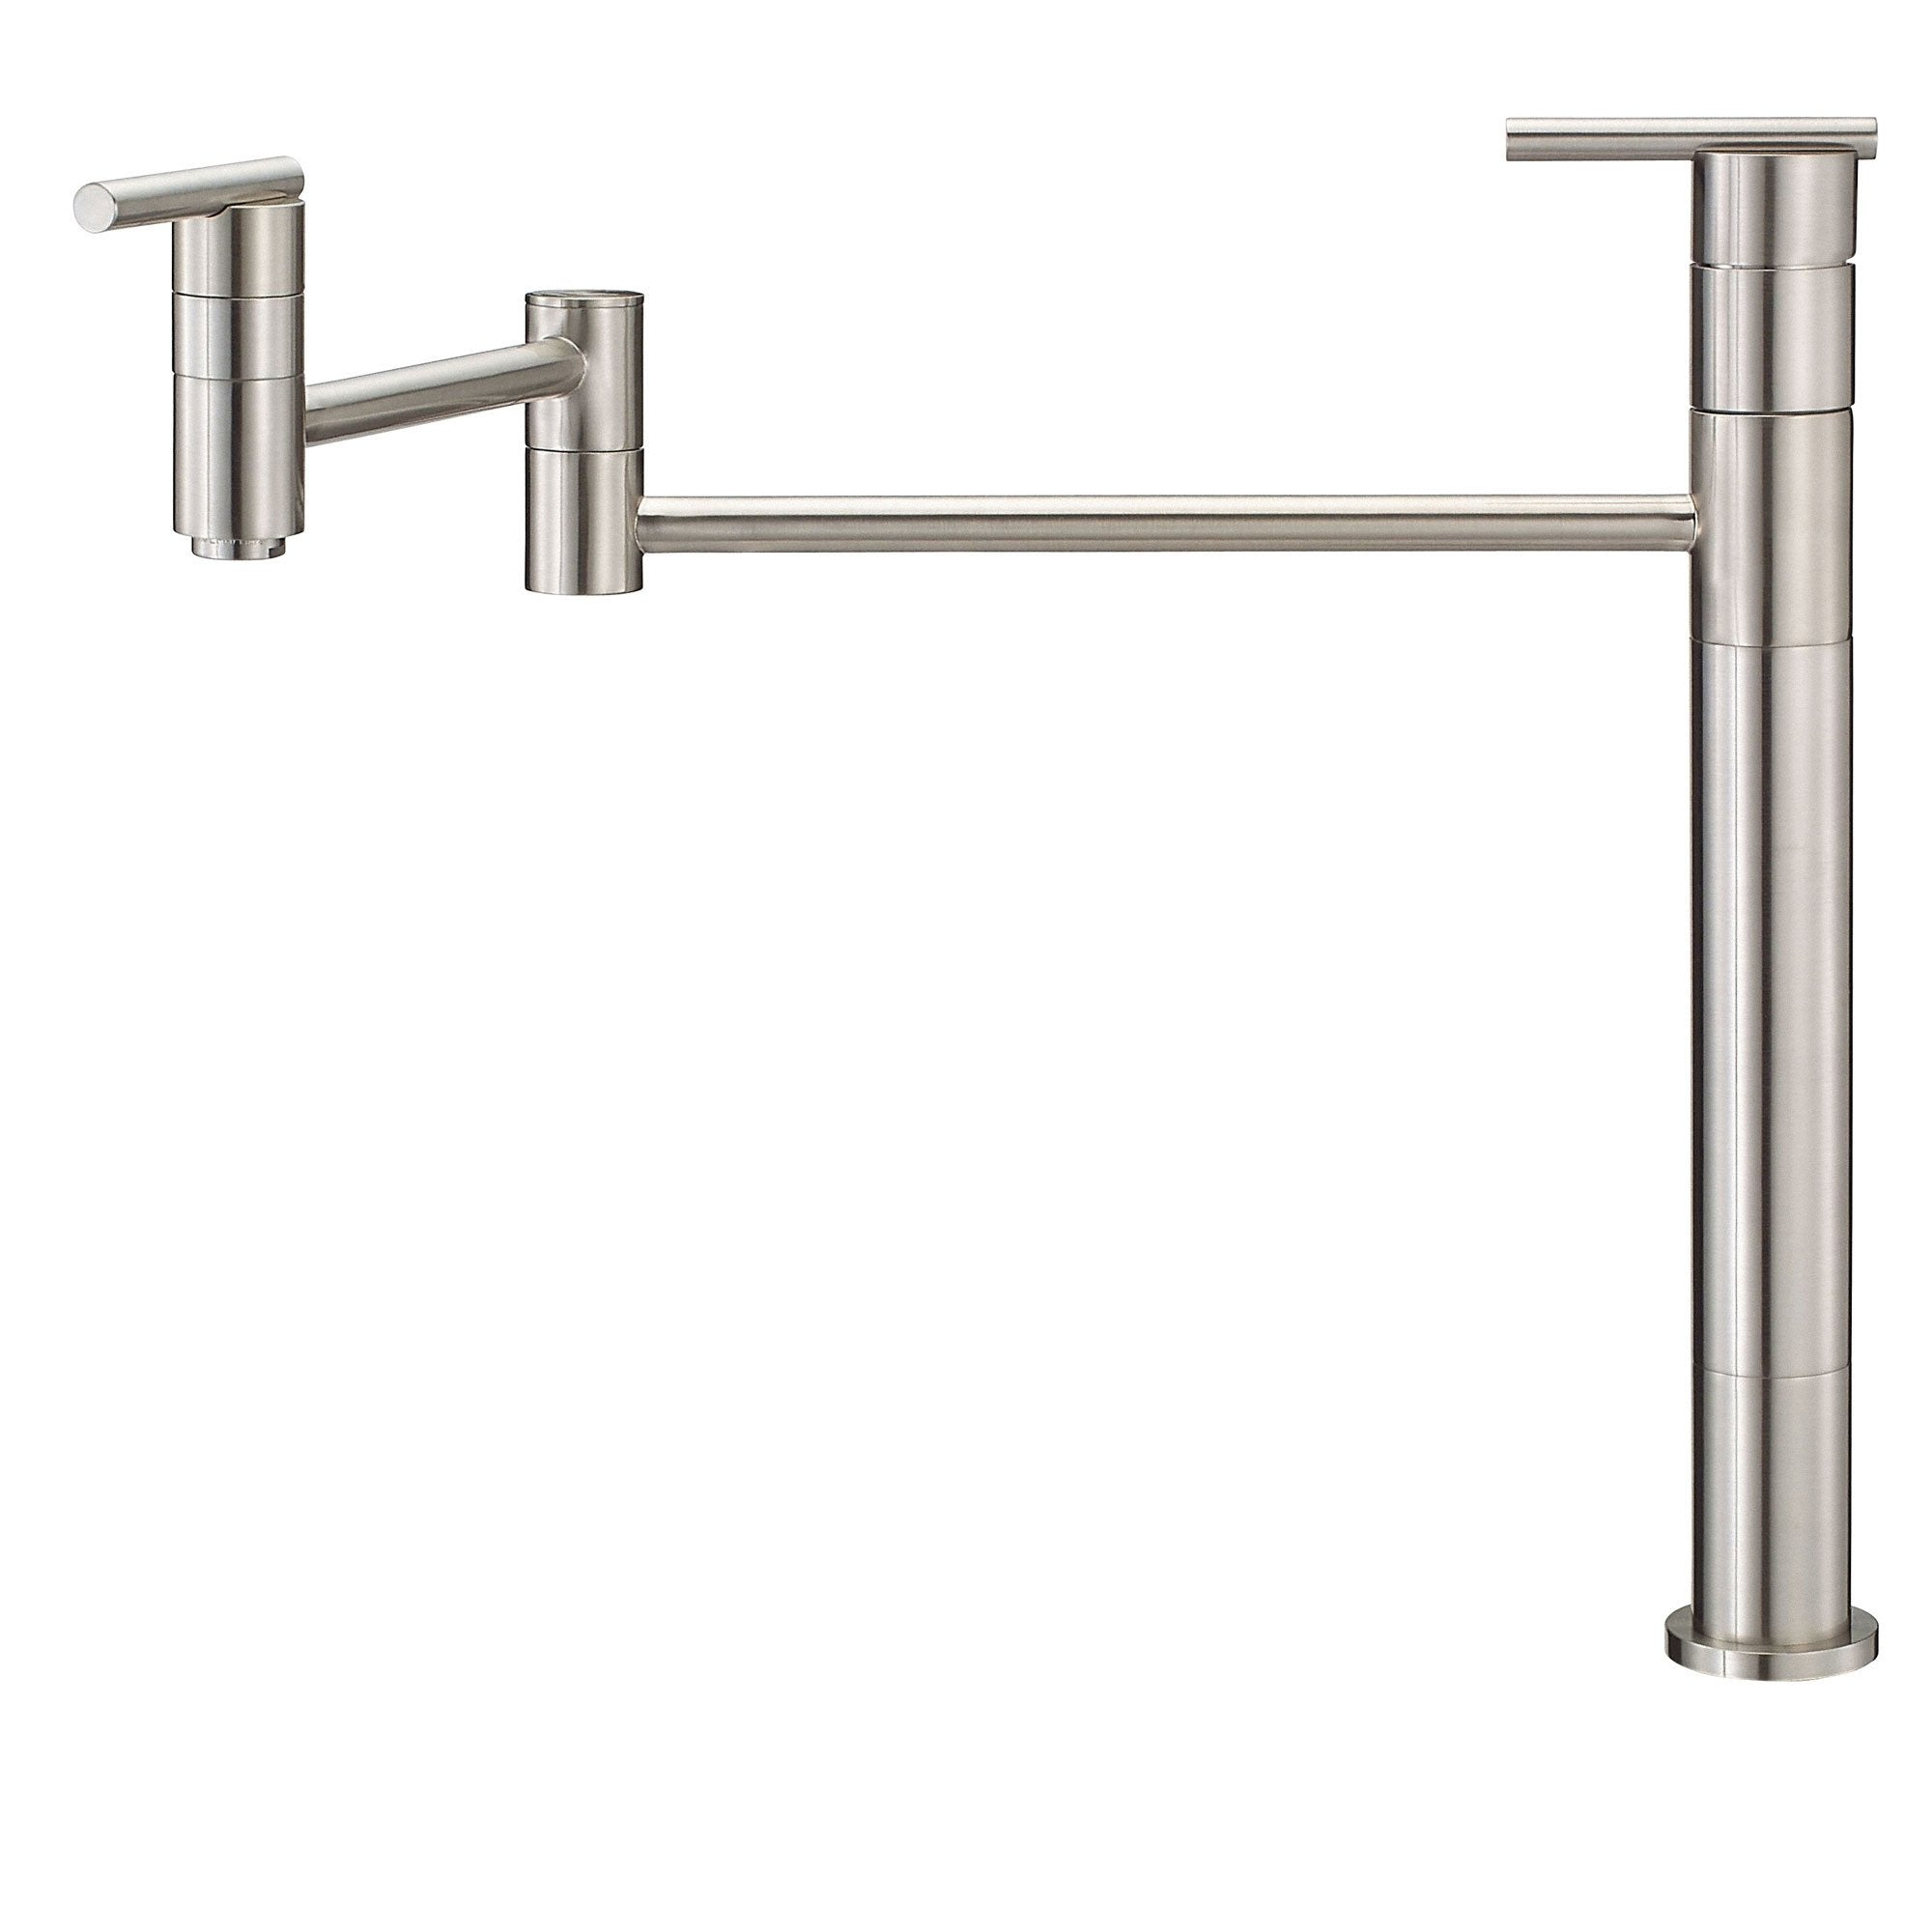 Danze Parma Stainless Steel Finish Deck Mount Modern Pot Filler Faucet